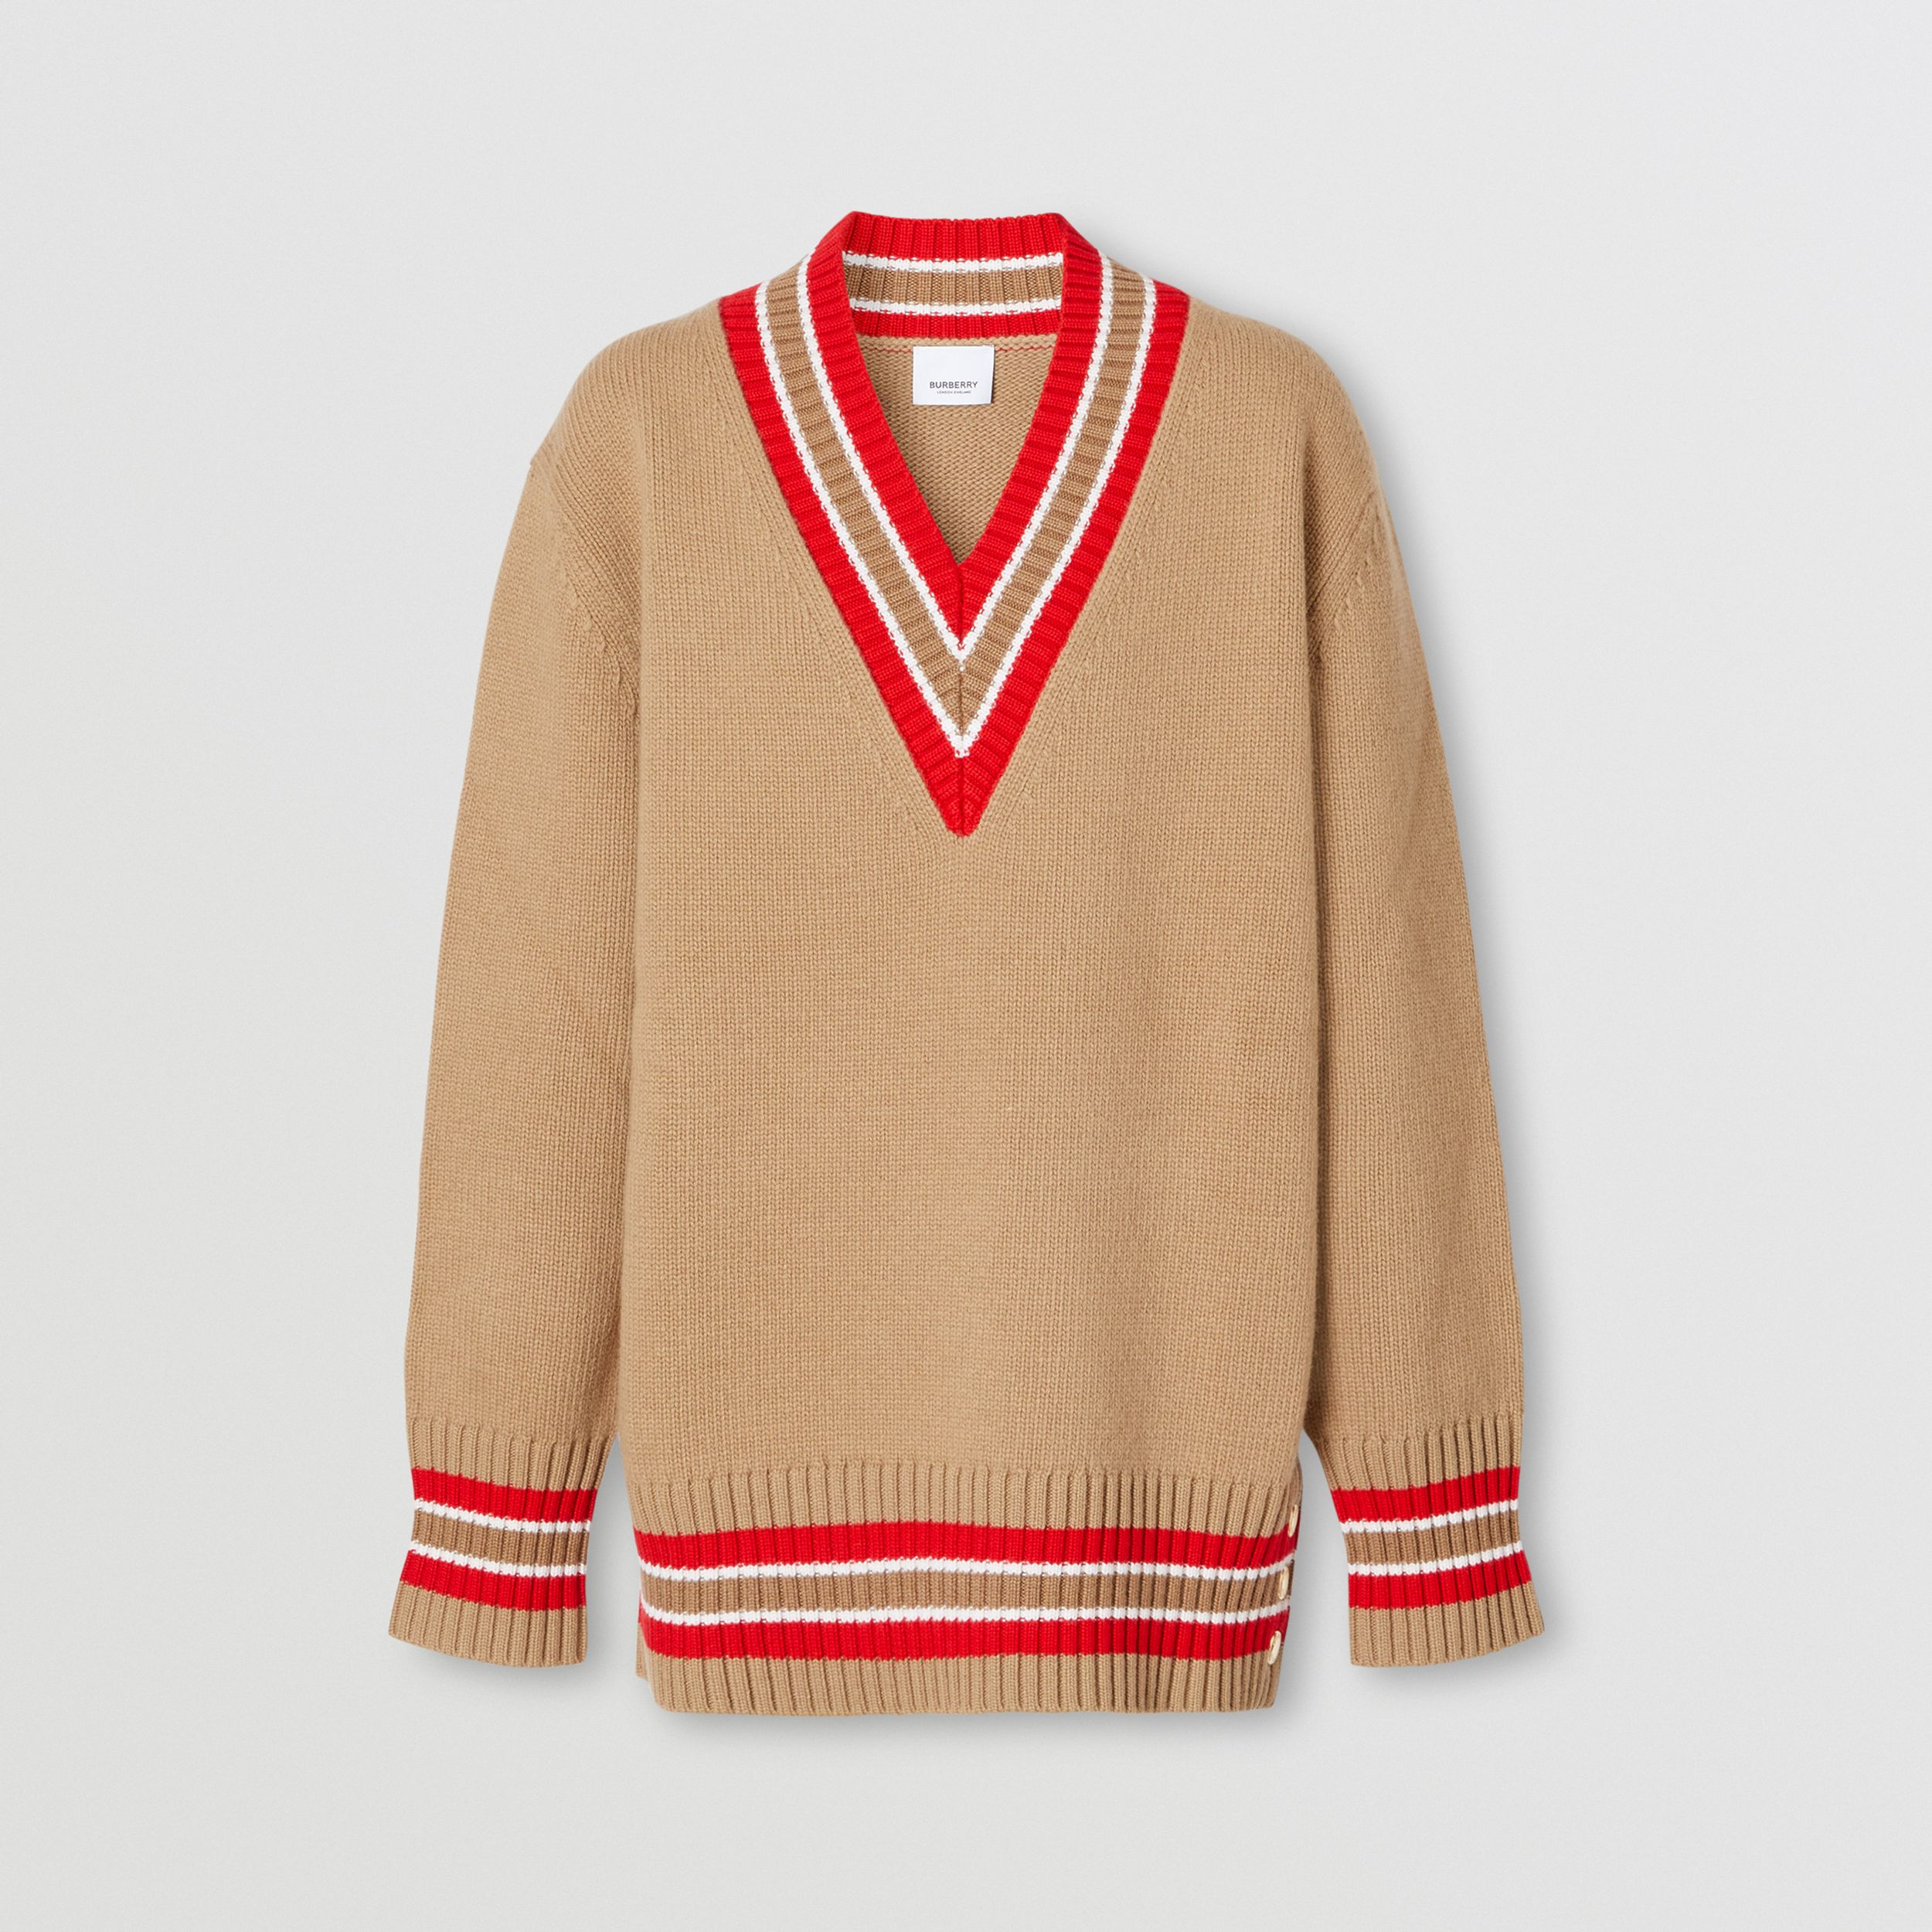 Wool Oversized Cricket Sweater in Camel - Women | Burberry Canada - 4